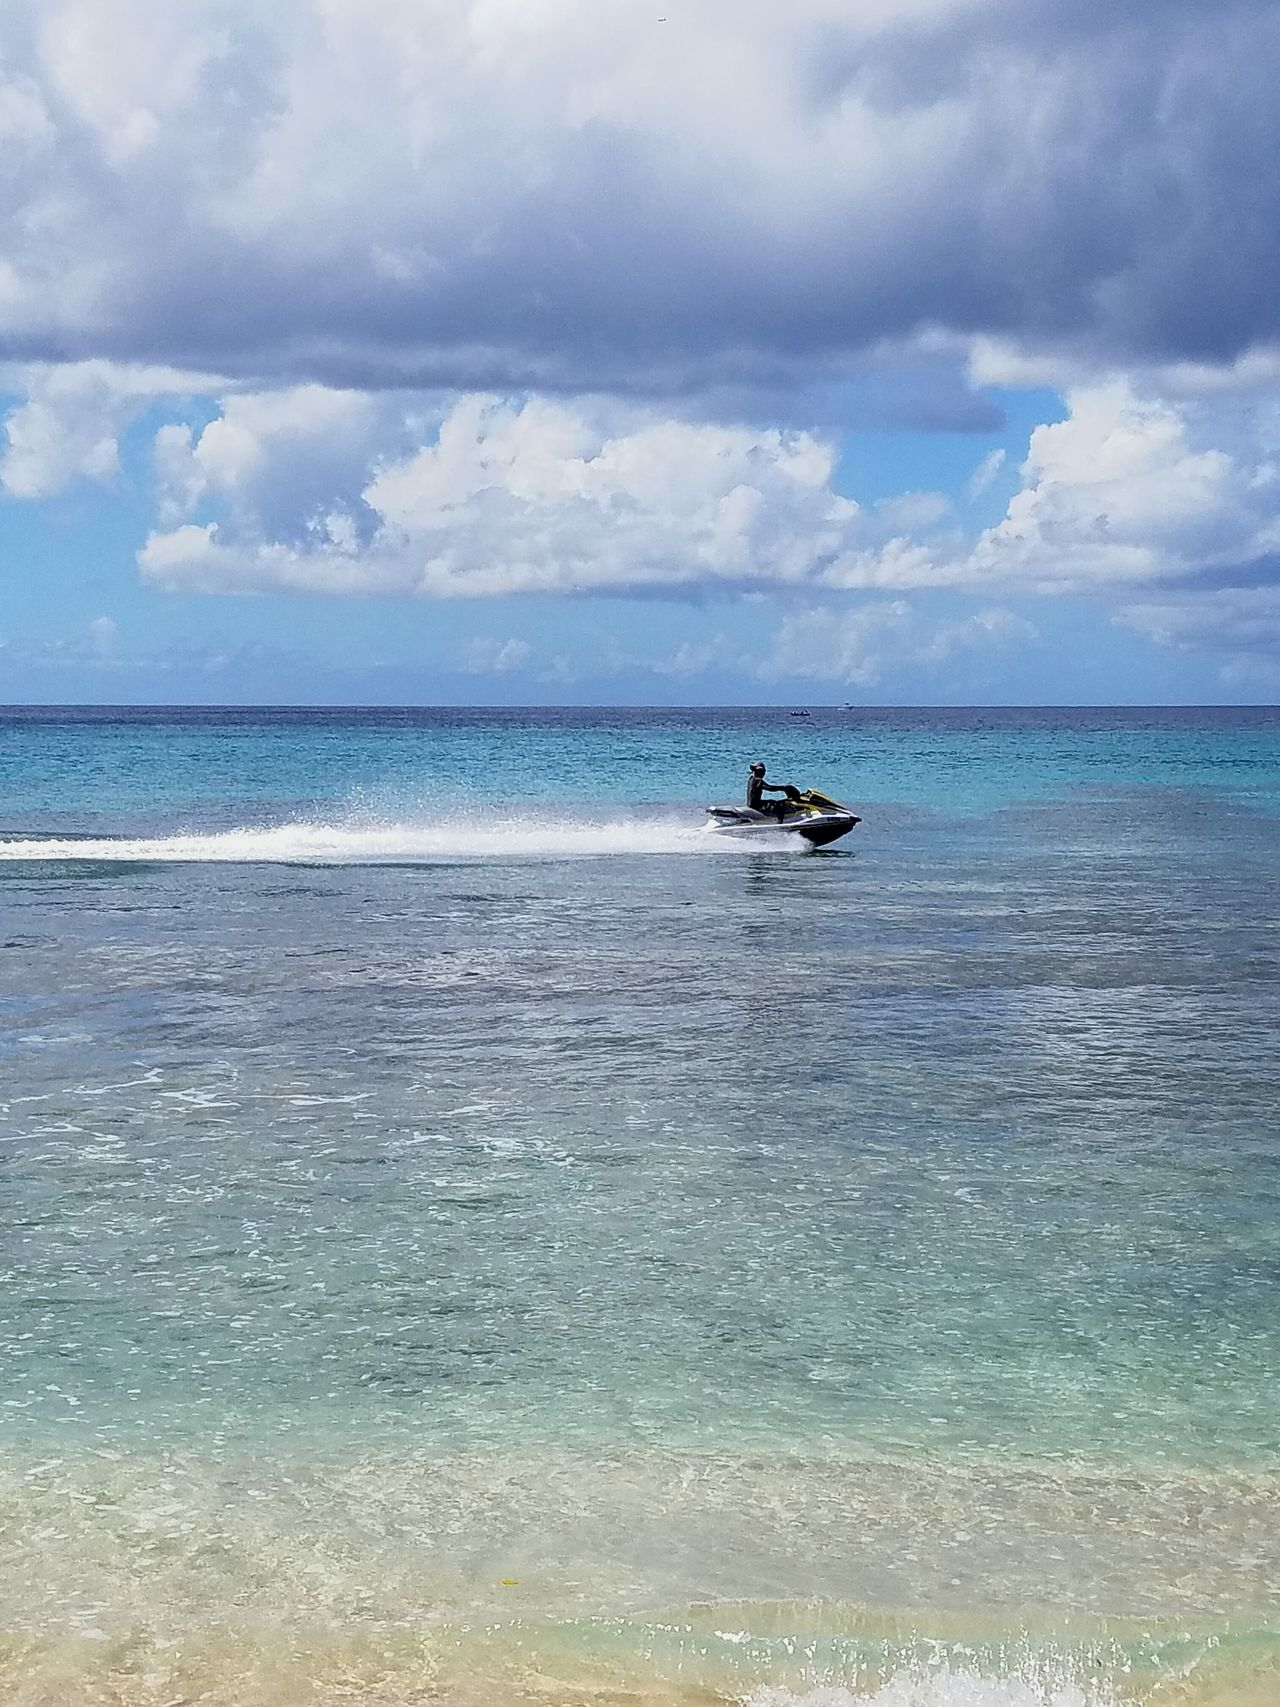 Sea Nautical Vessel Horizon Over Water Transportation Cloud - Sky Sky Outdoors Water Day Open Edit St Kitts Postcard Tropical Climate Seascape Travel Destinations Jet Ski Travel Blue Beach Water Sport Summer Vacations Sea And Sky Crystal Clear Waters Barbados